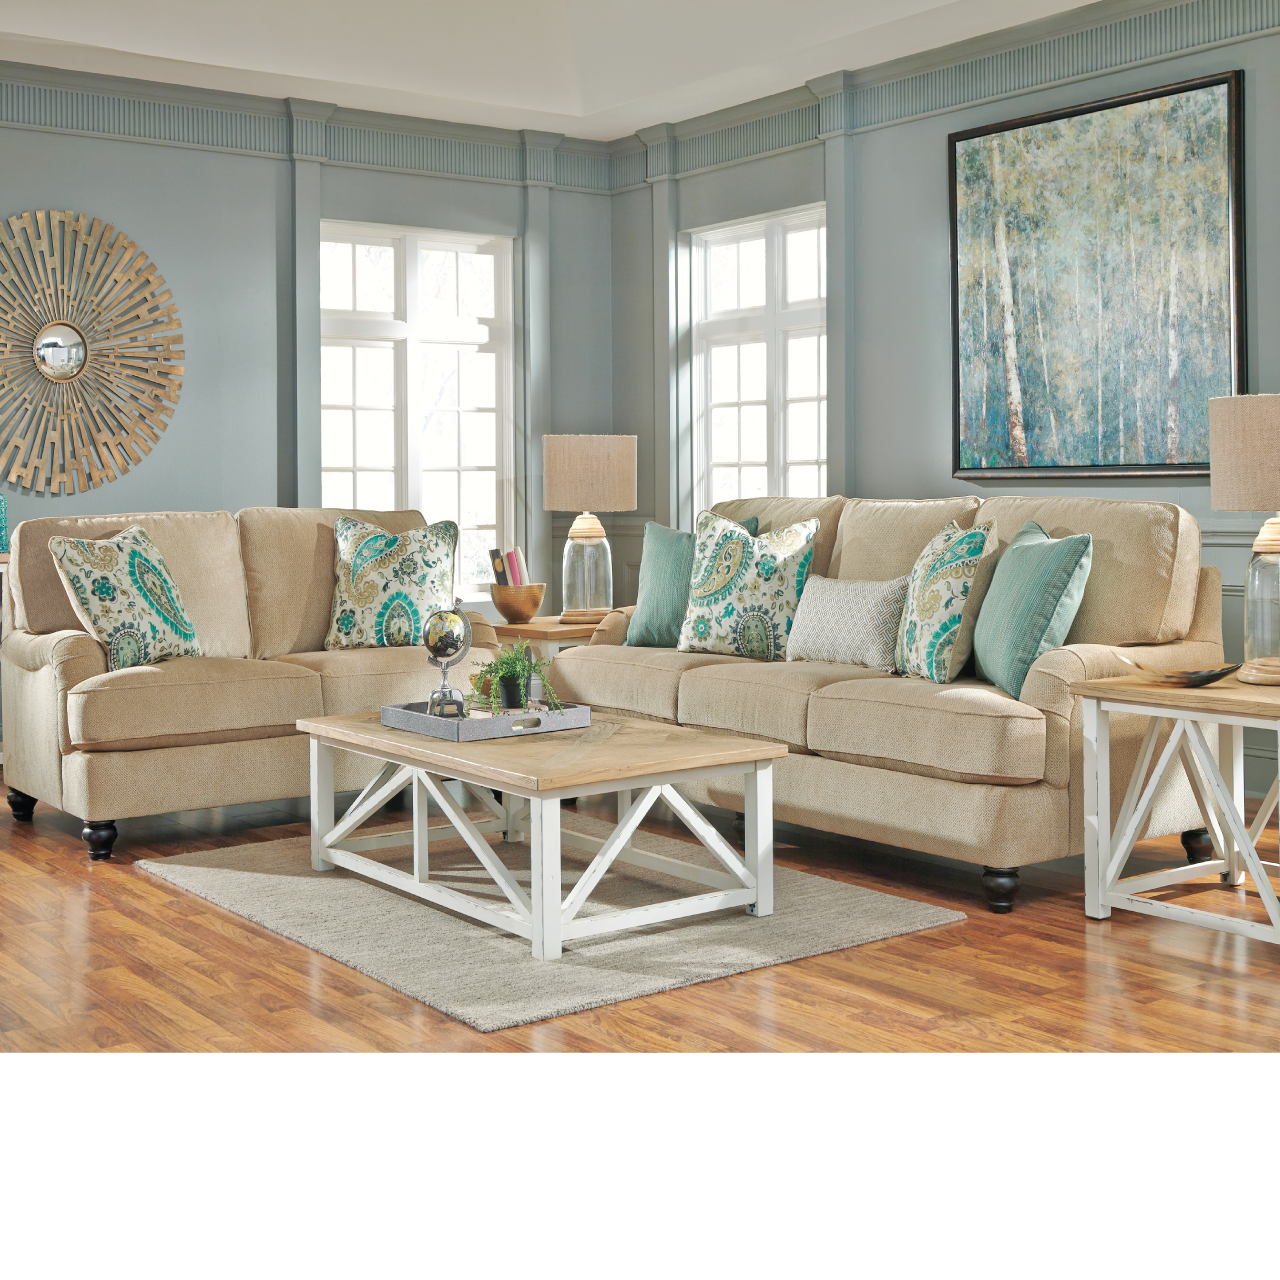 Coastal living room ideas lochian sofa by ashley for Ideas of living room furniture